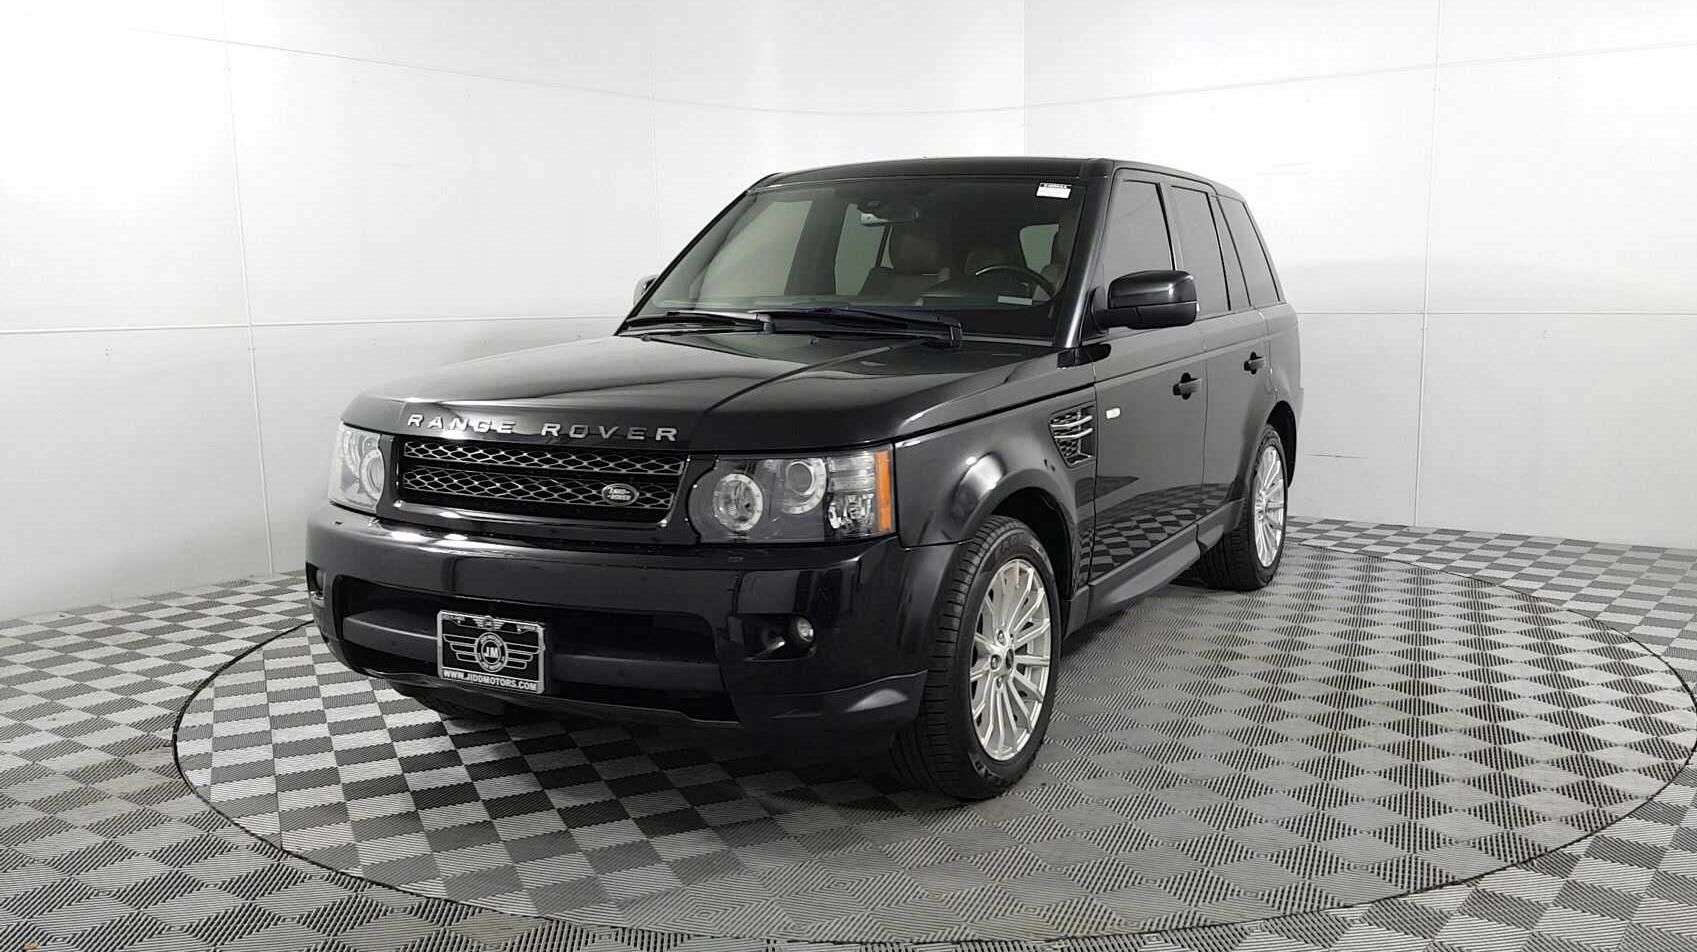 Used 2012 Land Rover Range Sport Hse In Des Plaines Install Backup Camera Discovery 10